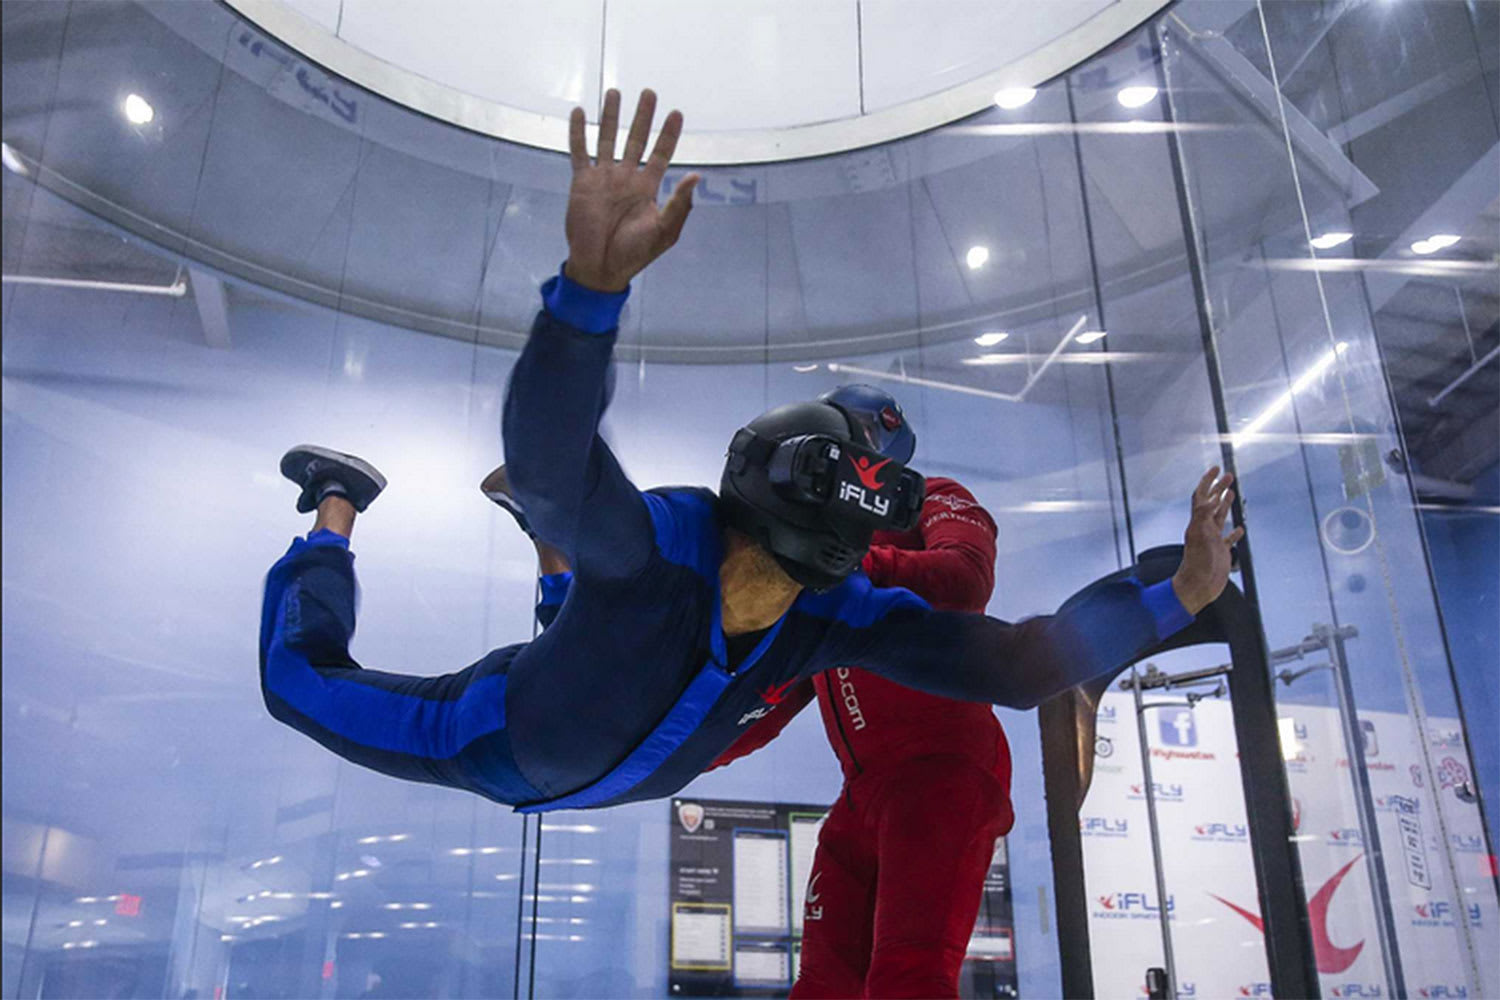 Indoor VR Skydiving